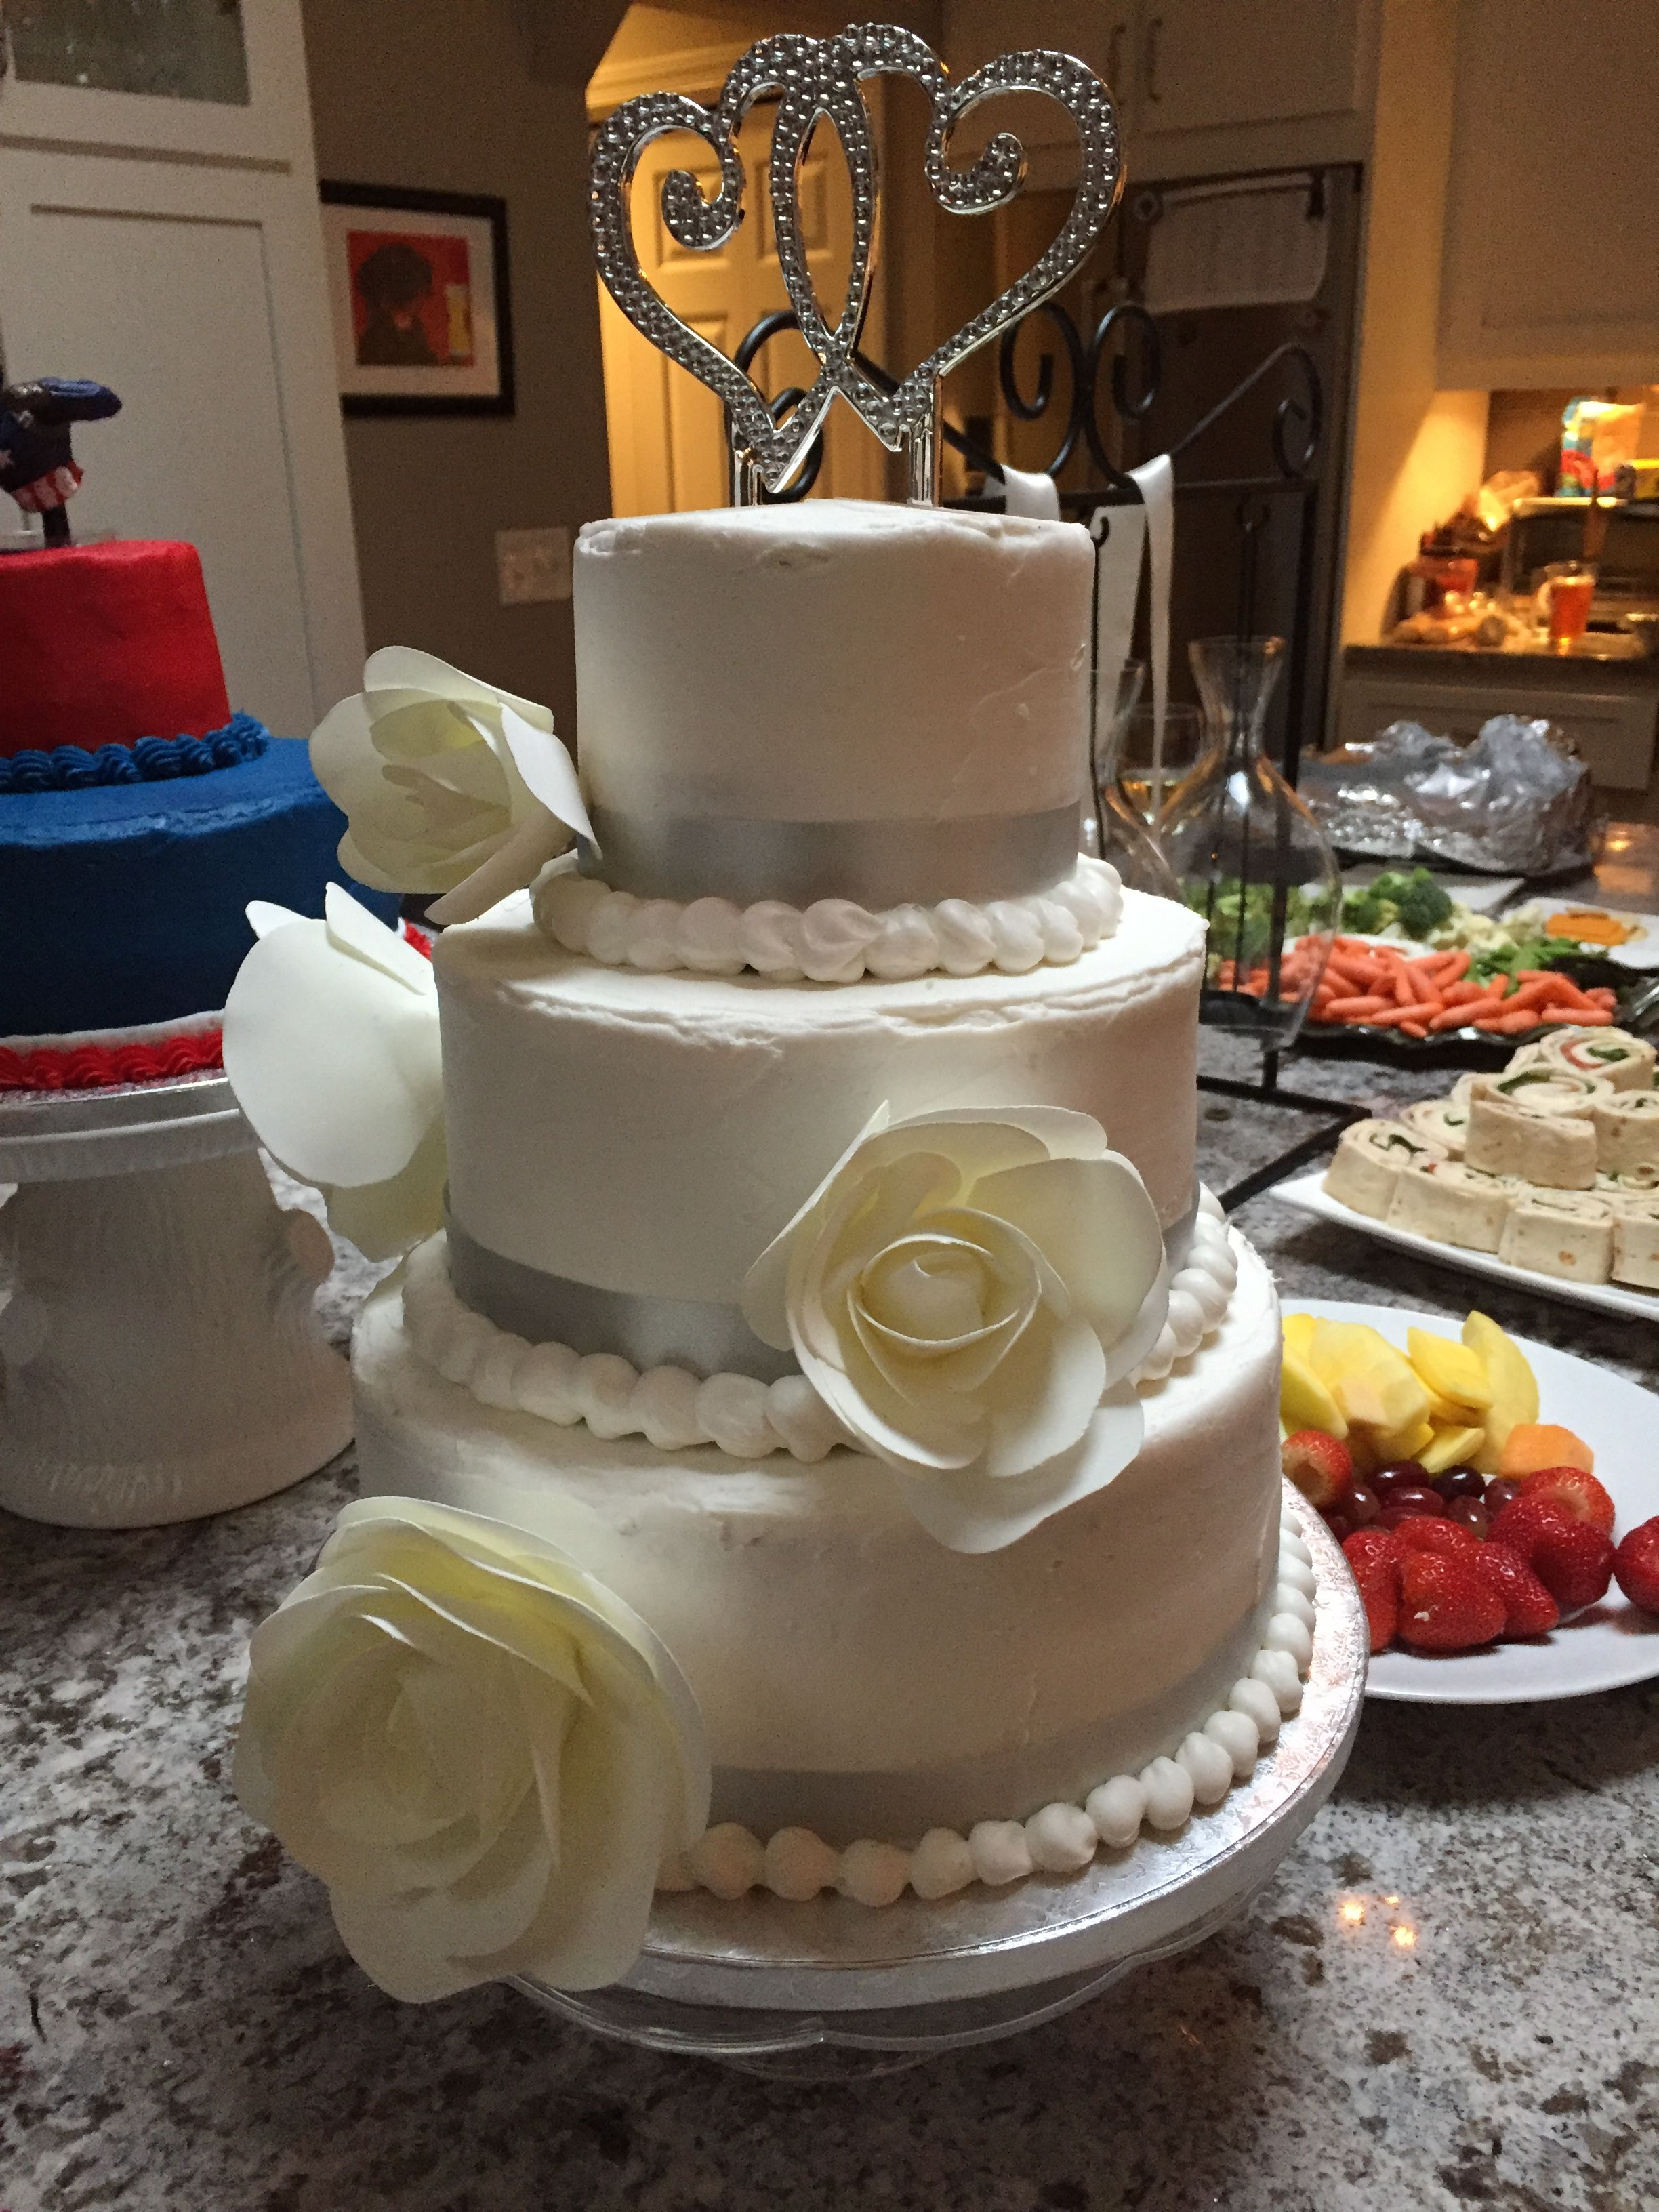 Jenni   Eli wedding cake   Sams club did a great job     Jenni     Jenni   Eli wedding cake   Sams club did a great job